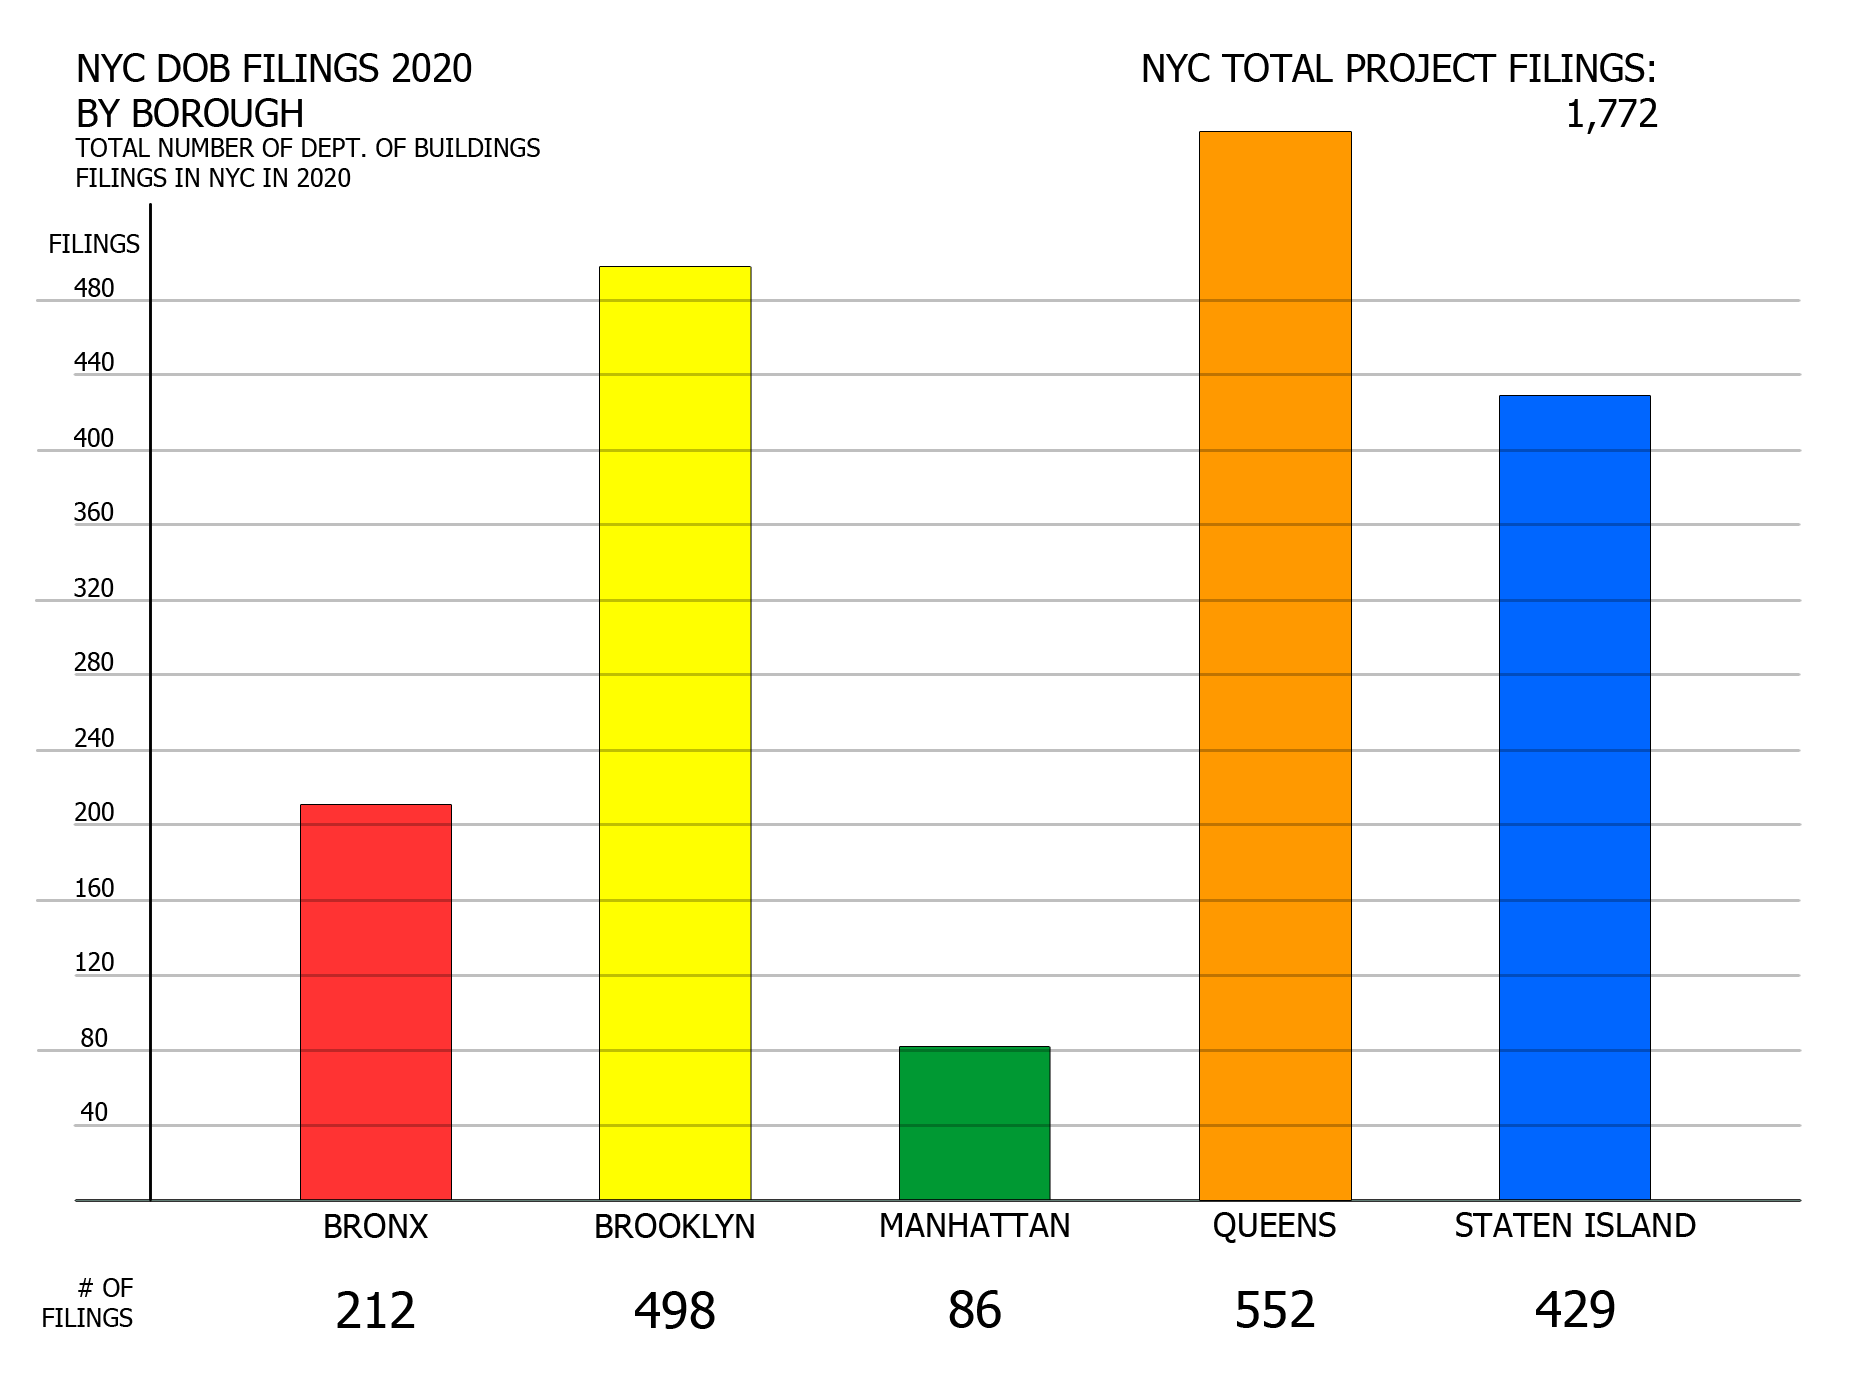 NYC DOB filings in 2020 by borough. Credit: Vitali Ogorodnikov